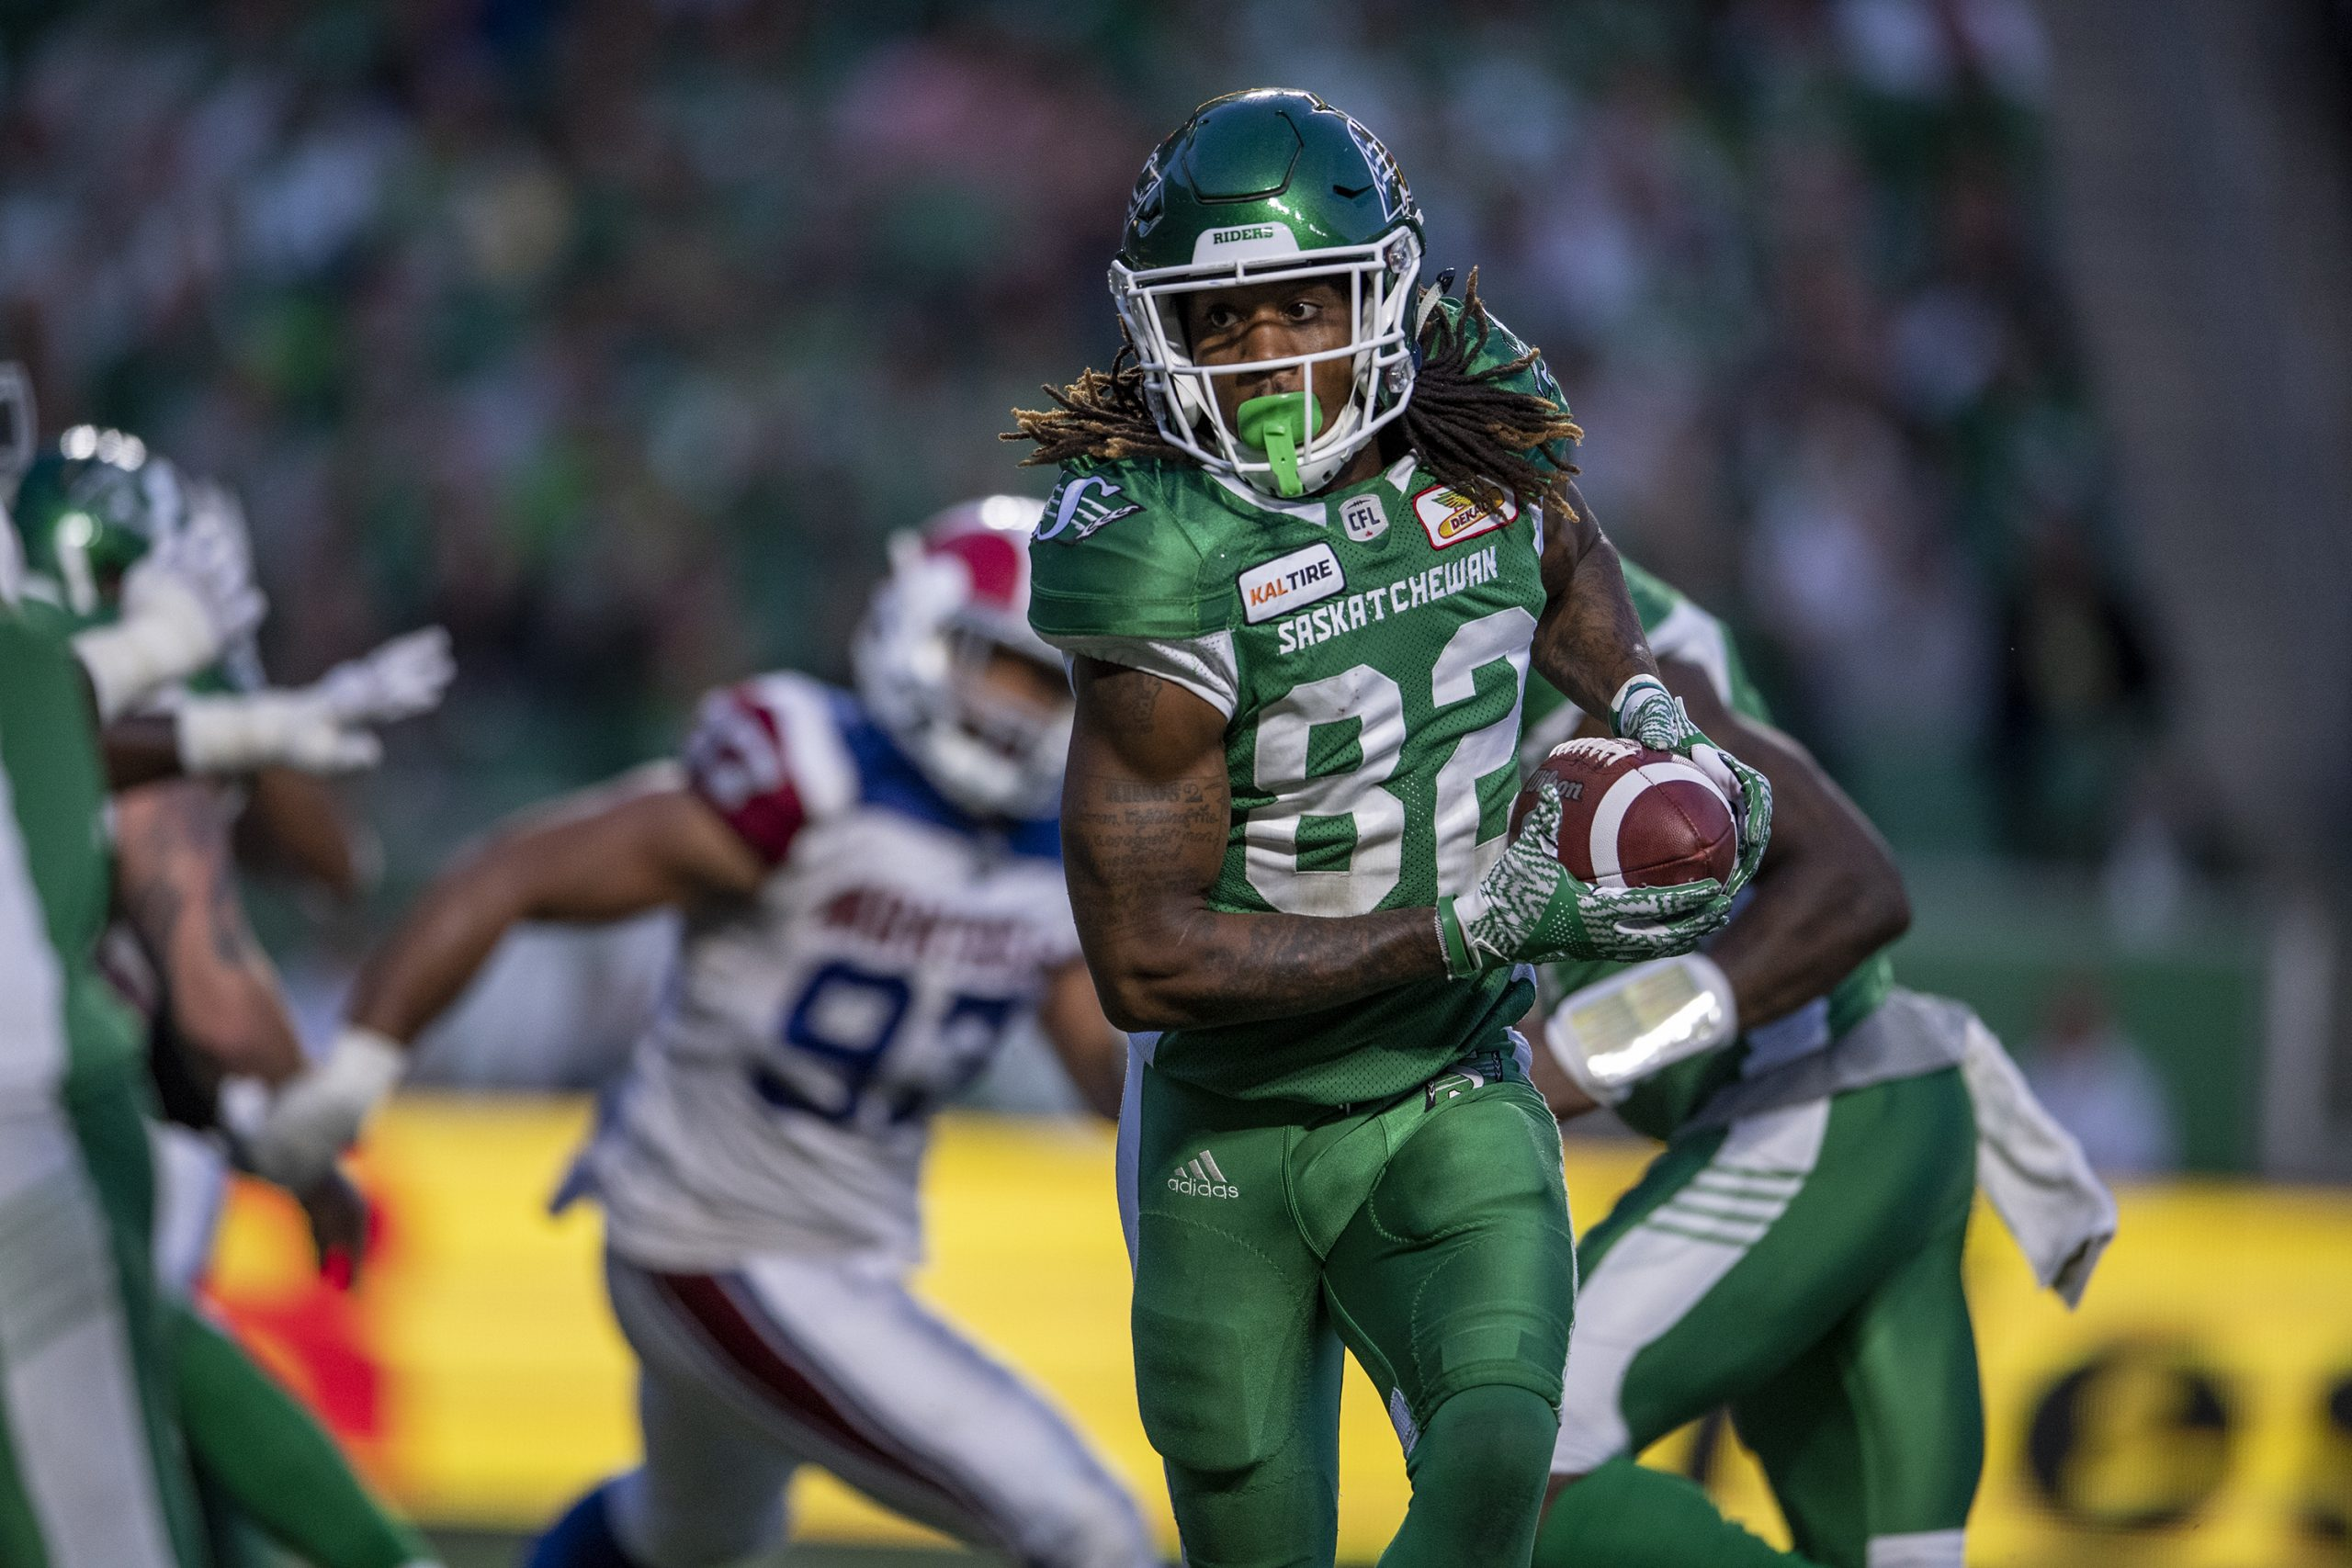 Roosevelt returns to Riders practice after knee sprain